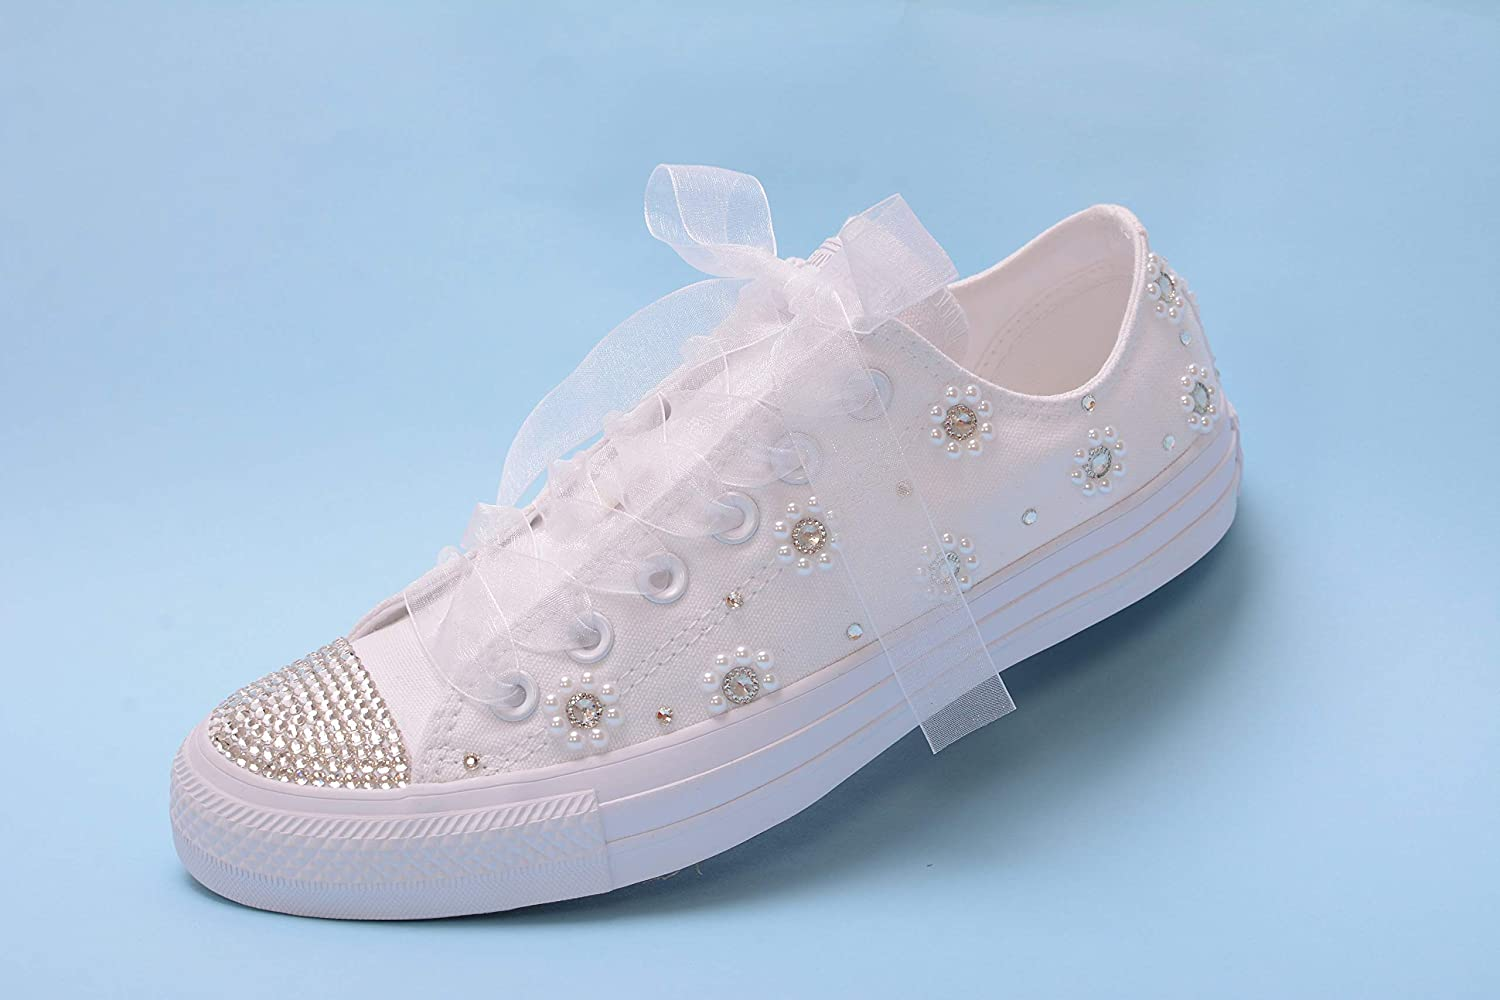 a86d7a64f58 Amazon.com: Bling White Pearl Wedding Sneakers For Bride, Lace ...